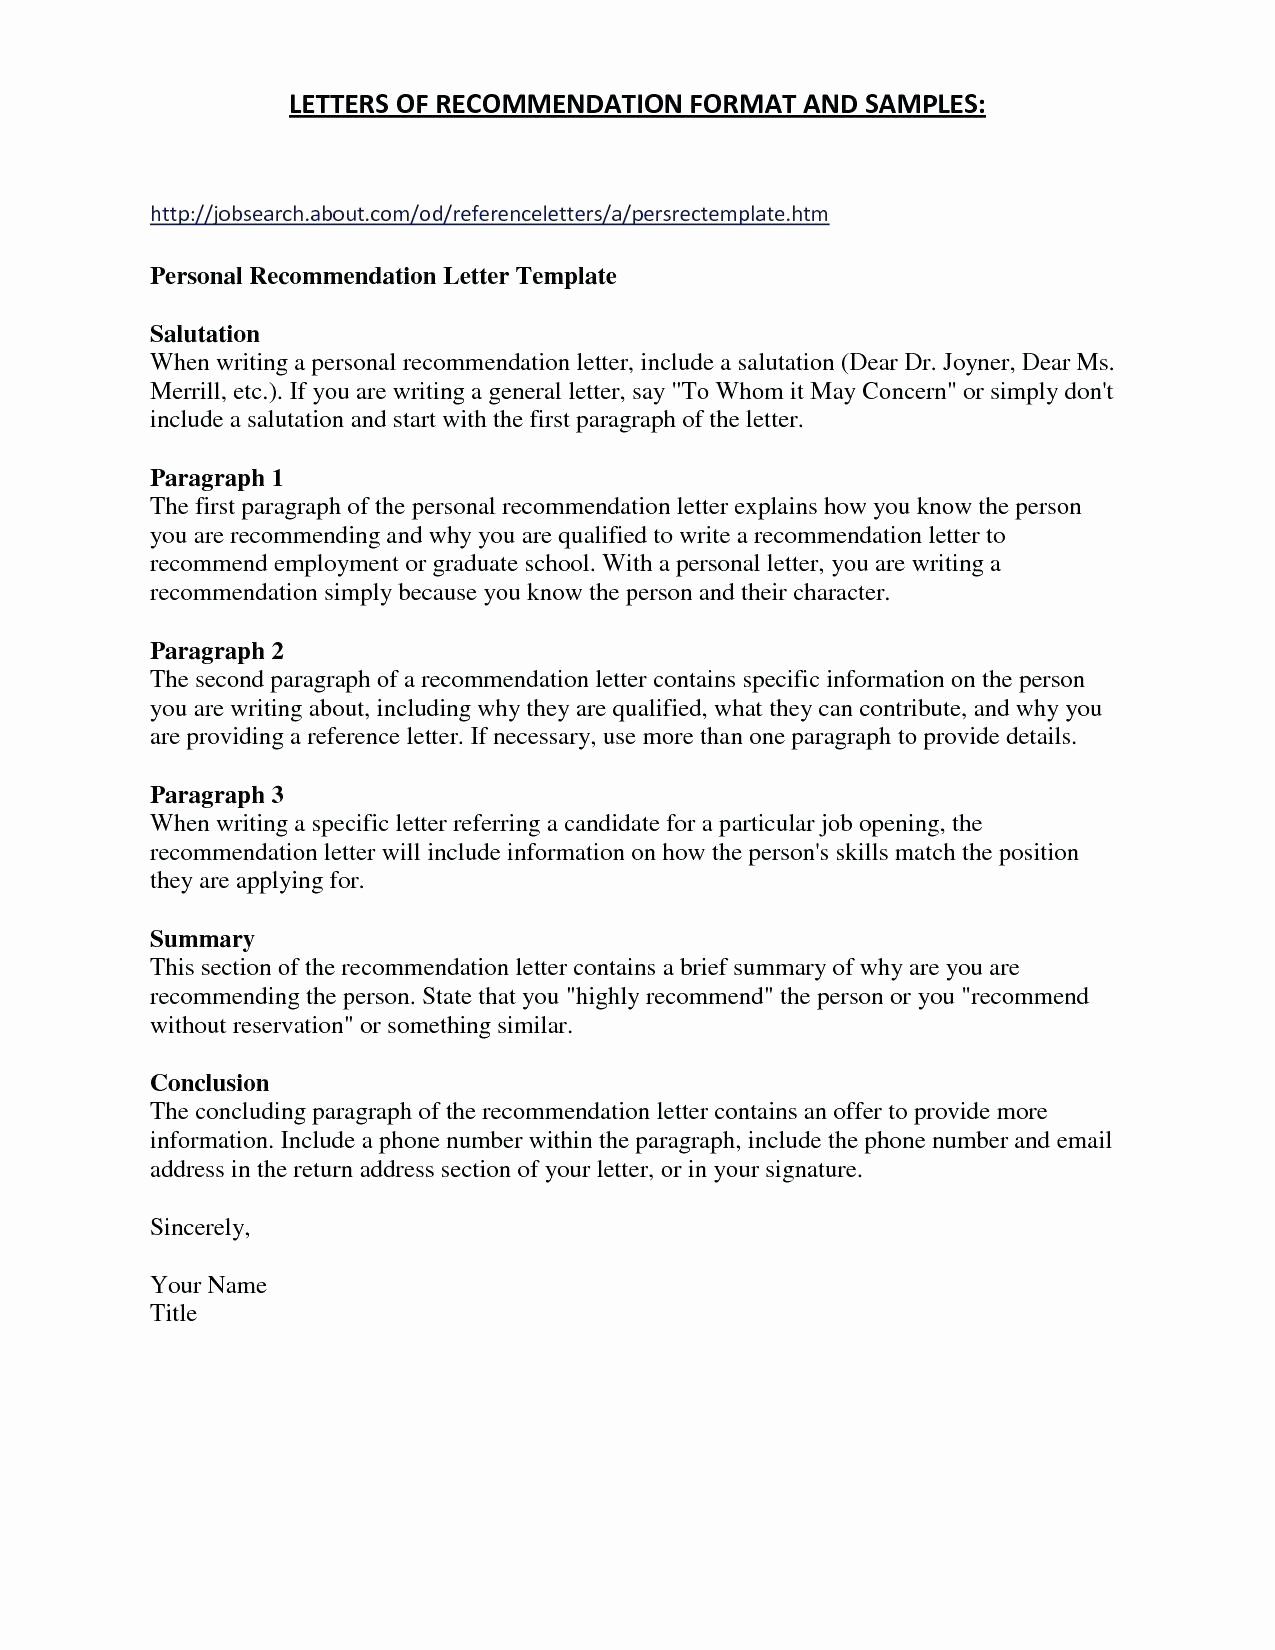 Scholarship Reference Letter Template - Sample Personalcharacter Reference Letter Created Using Ms Word